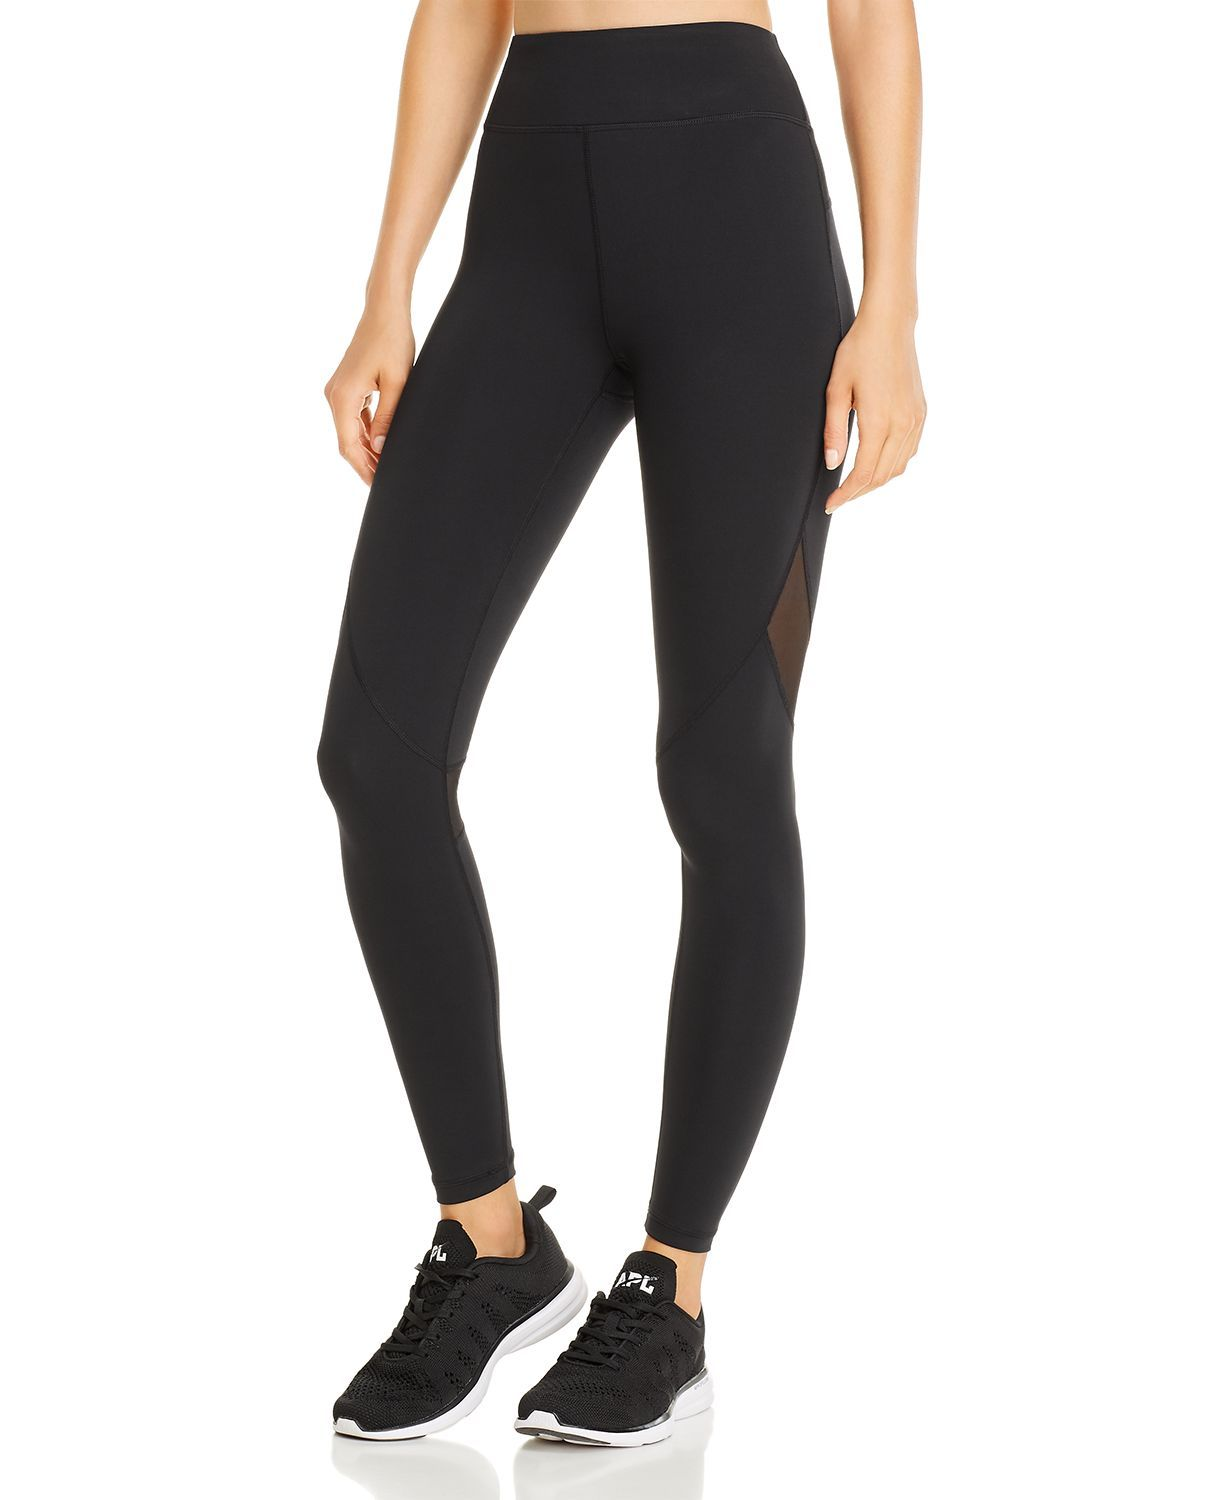 Fashion Yoga Tights Pant Soft Stretch Leggings for Workout Running Women Girls